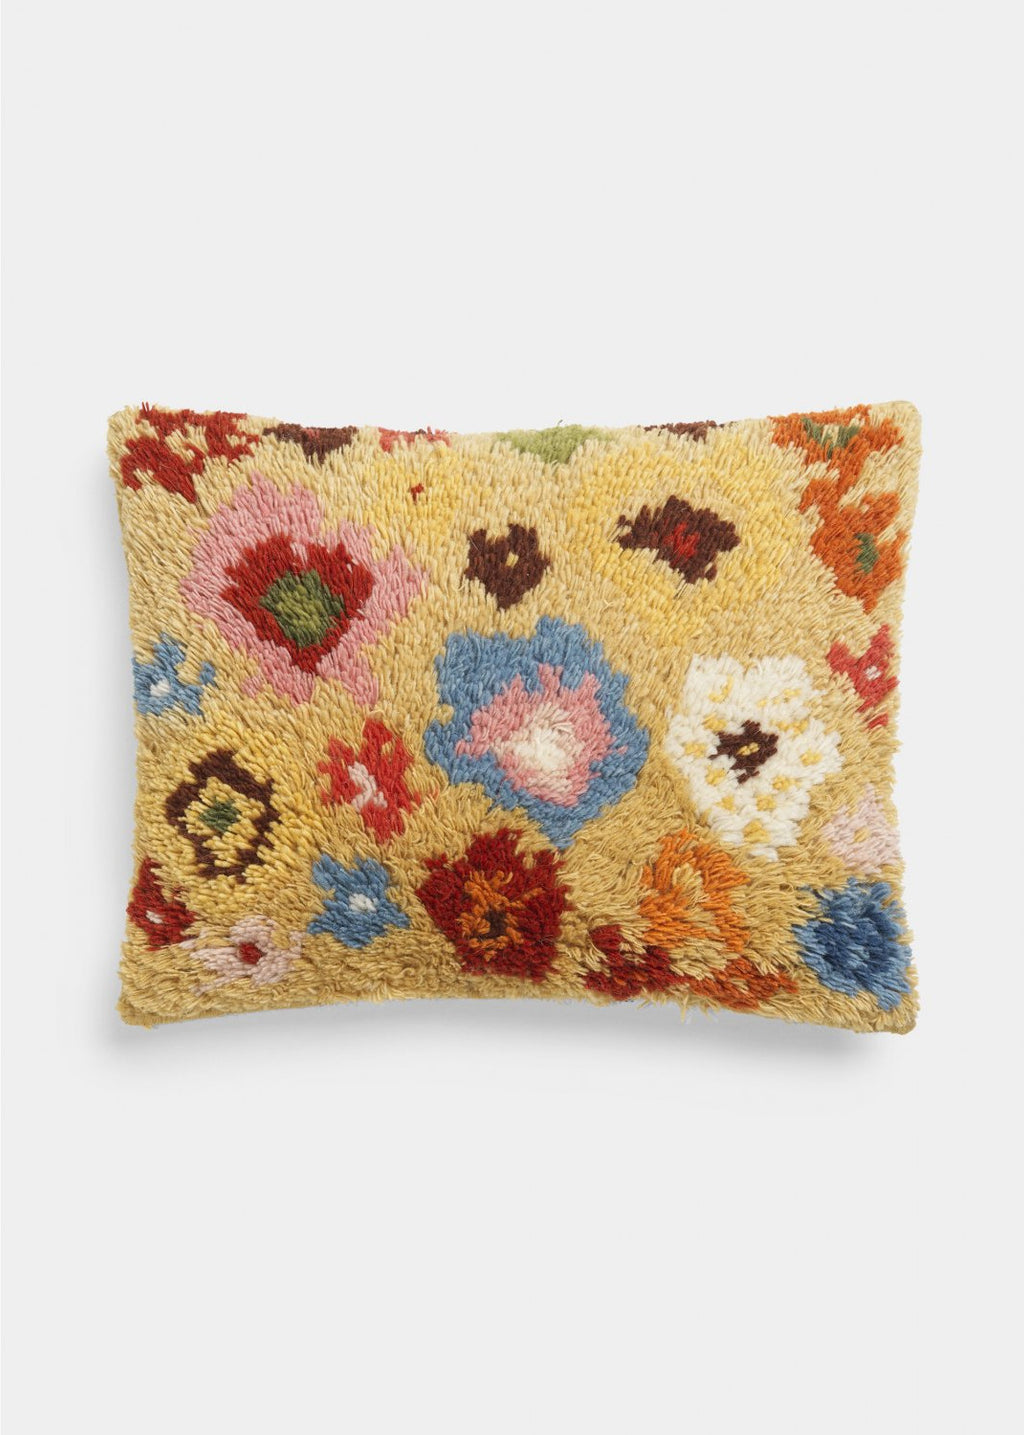 yellow wool pillow with brightly colored knitted flowers by designer aiayu